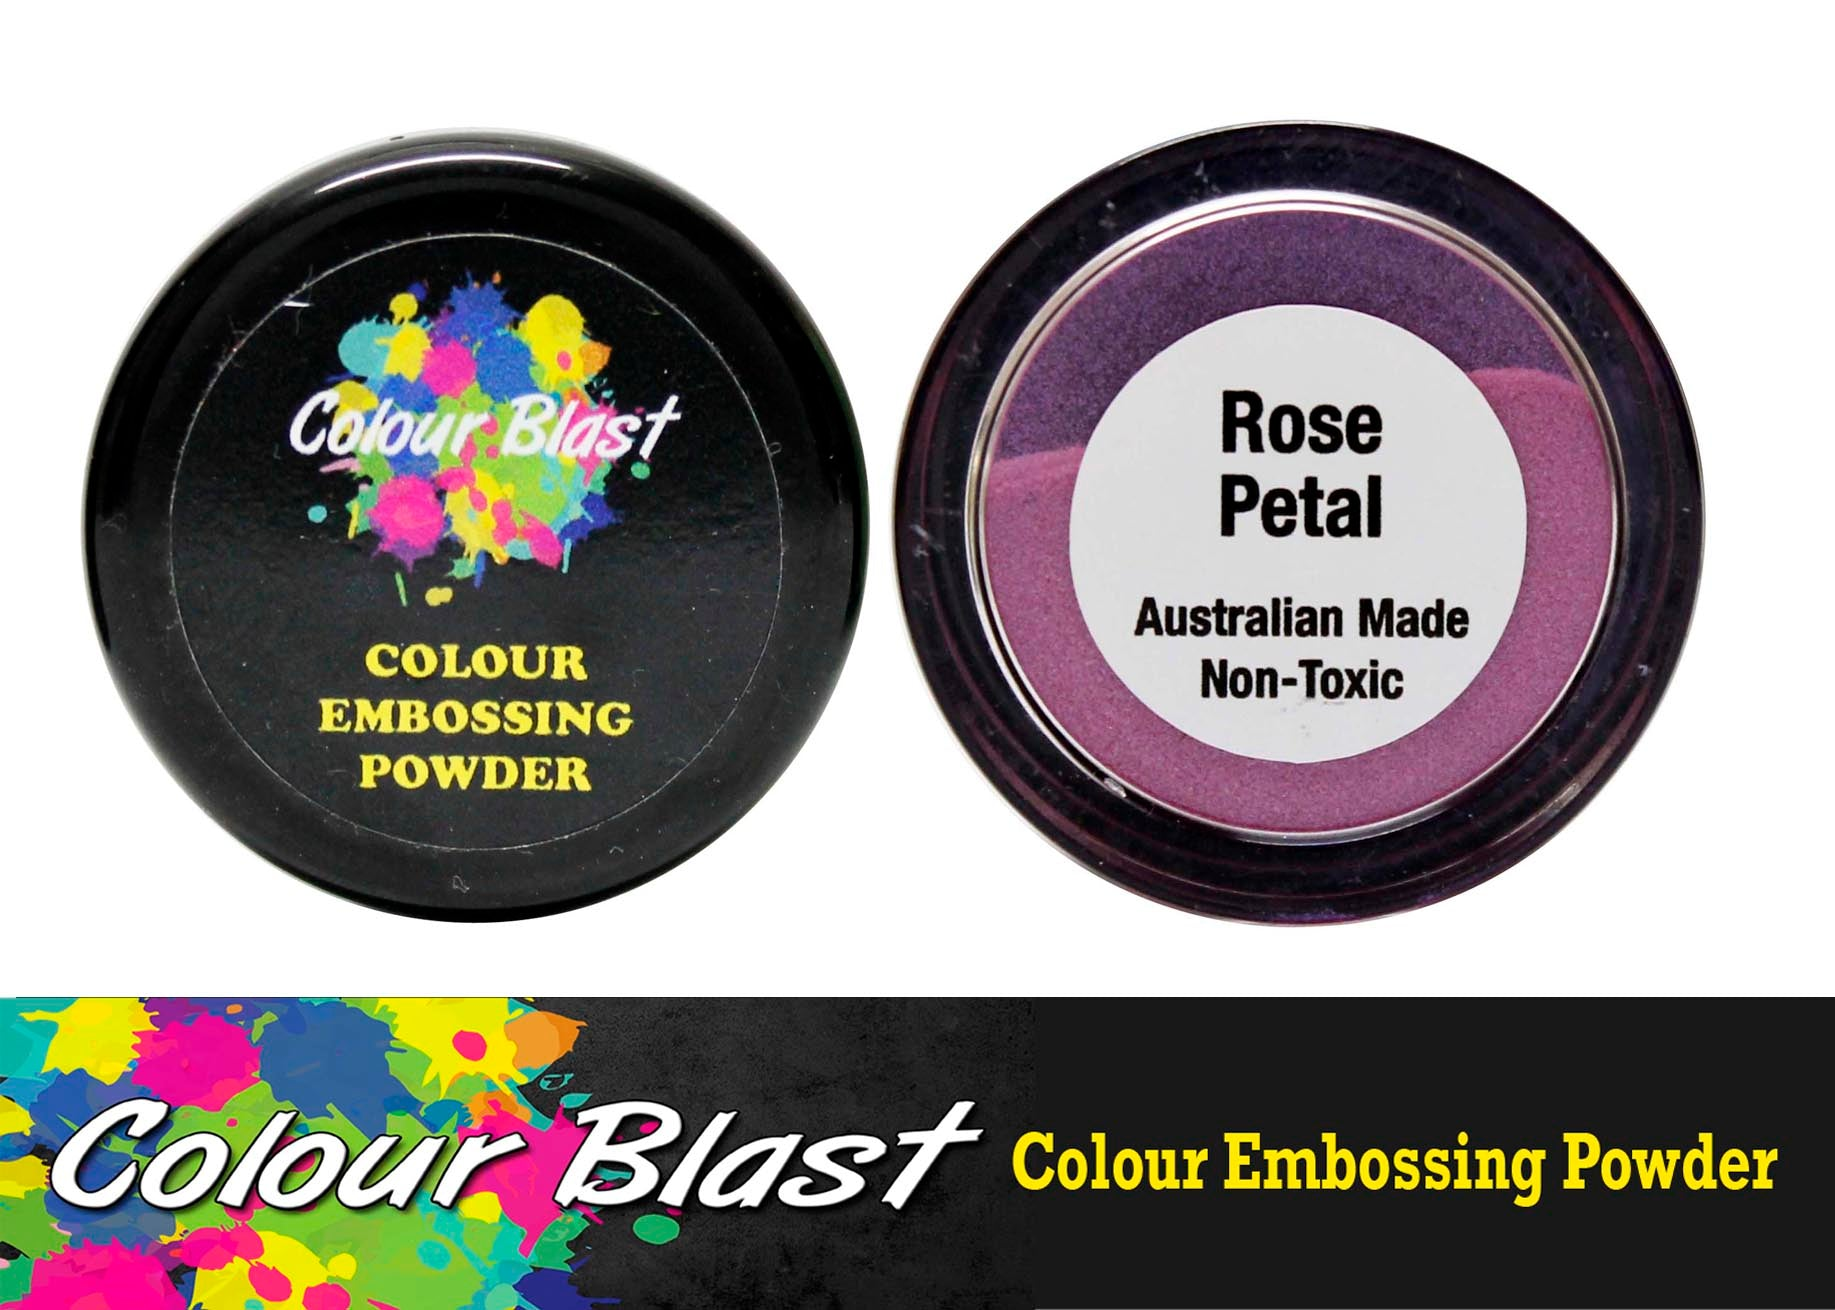 Colour Blast Embossing Powder Rose Petal